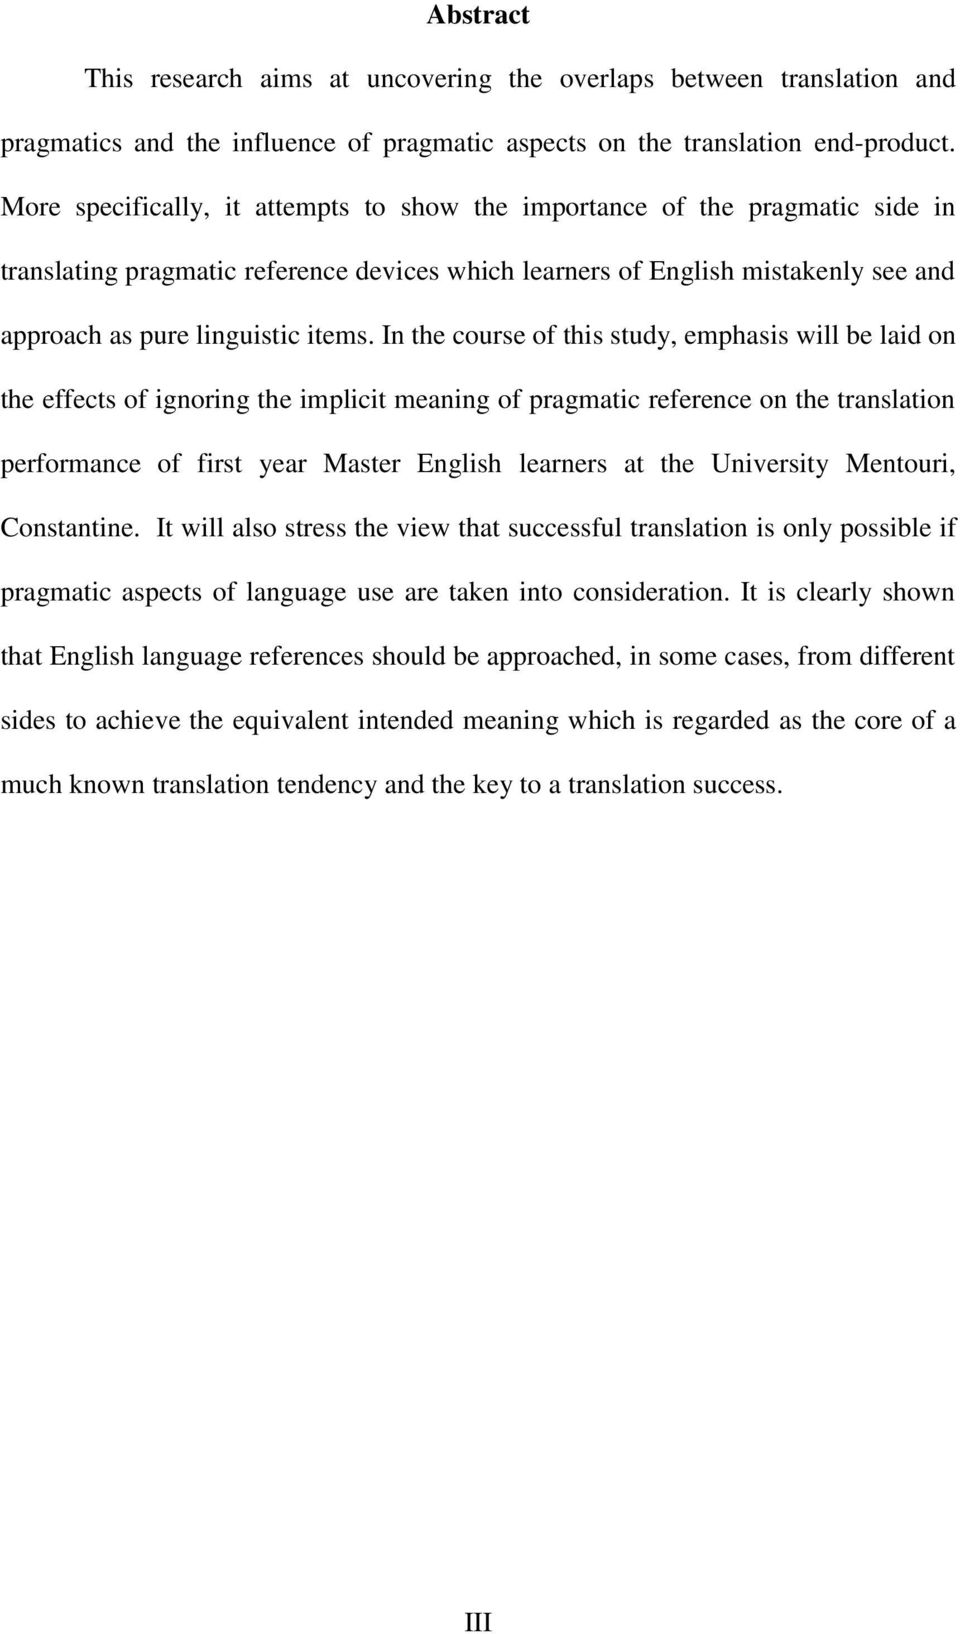 In the course of this study, emphasis will be laid on the effects of ignoring the implicit meaning of pragmatic reference on the translation performance of first year Master English learners at the